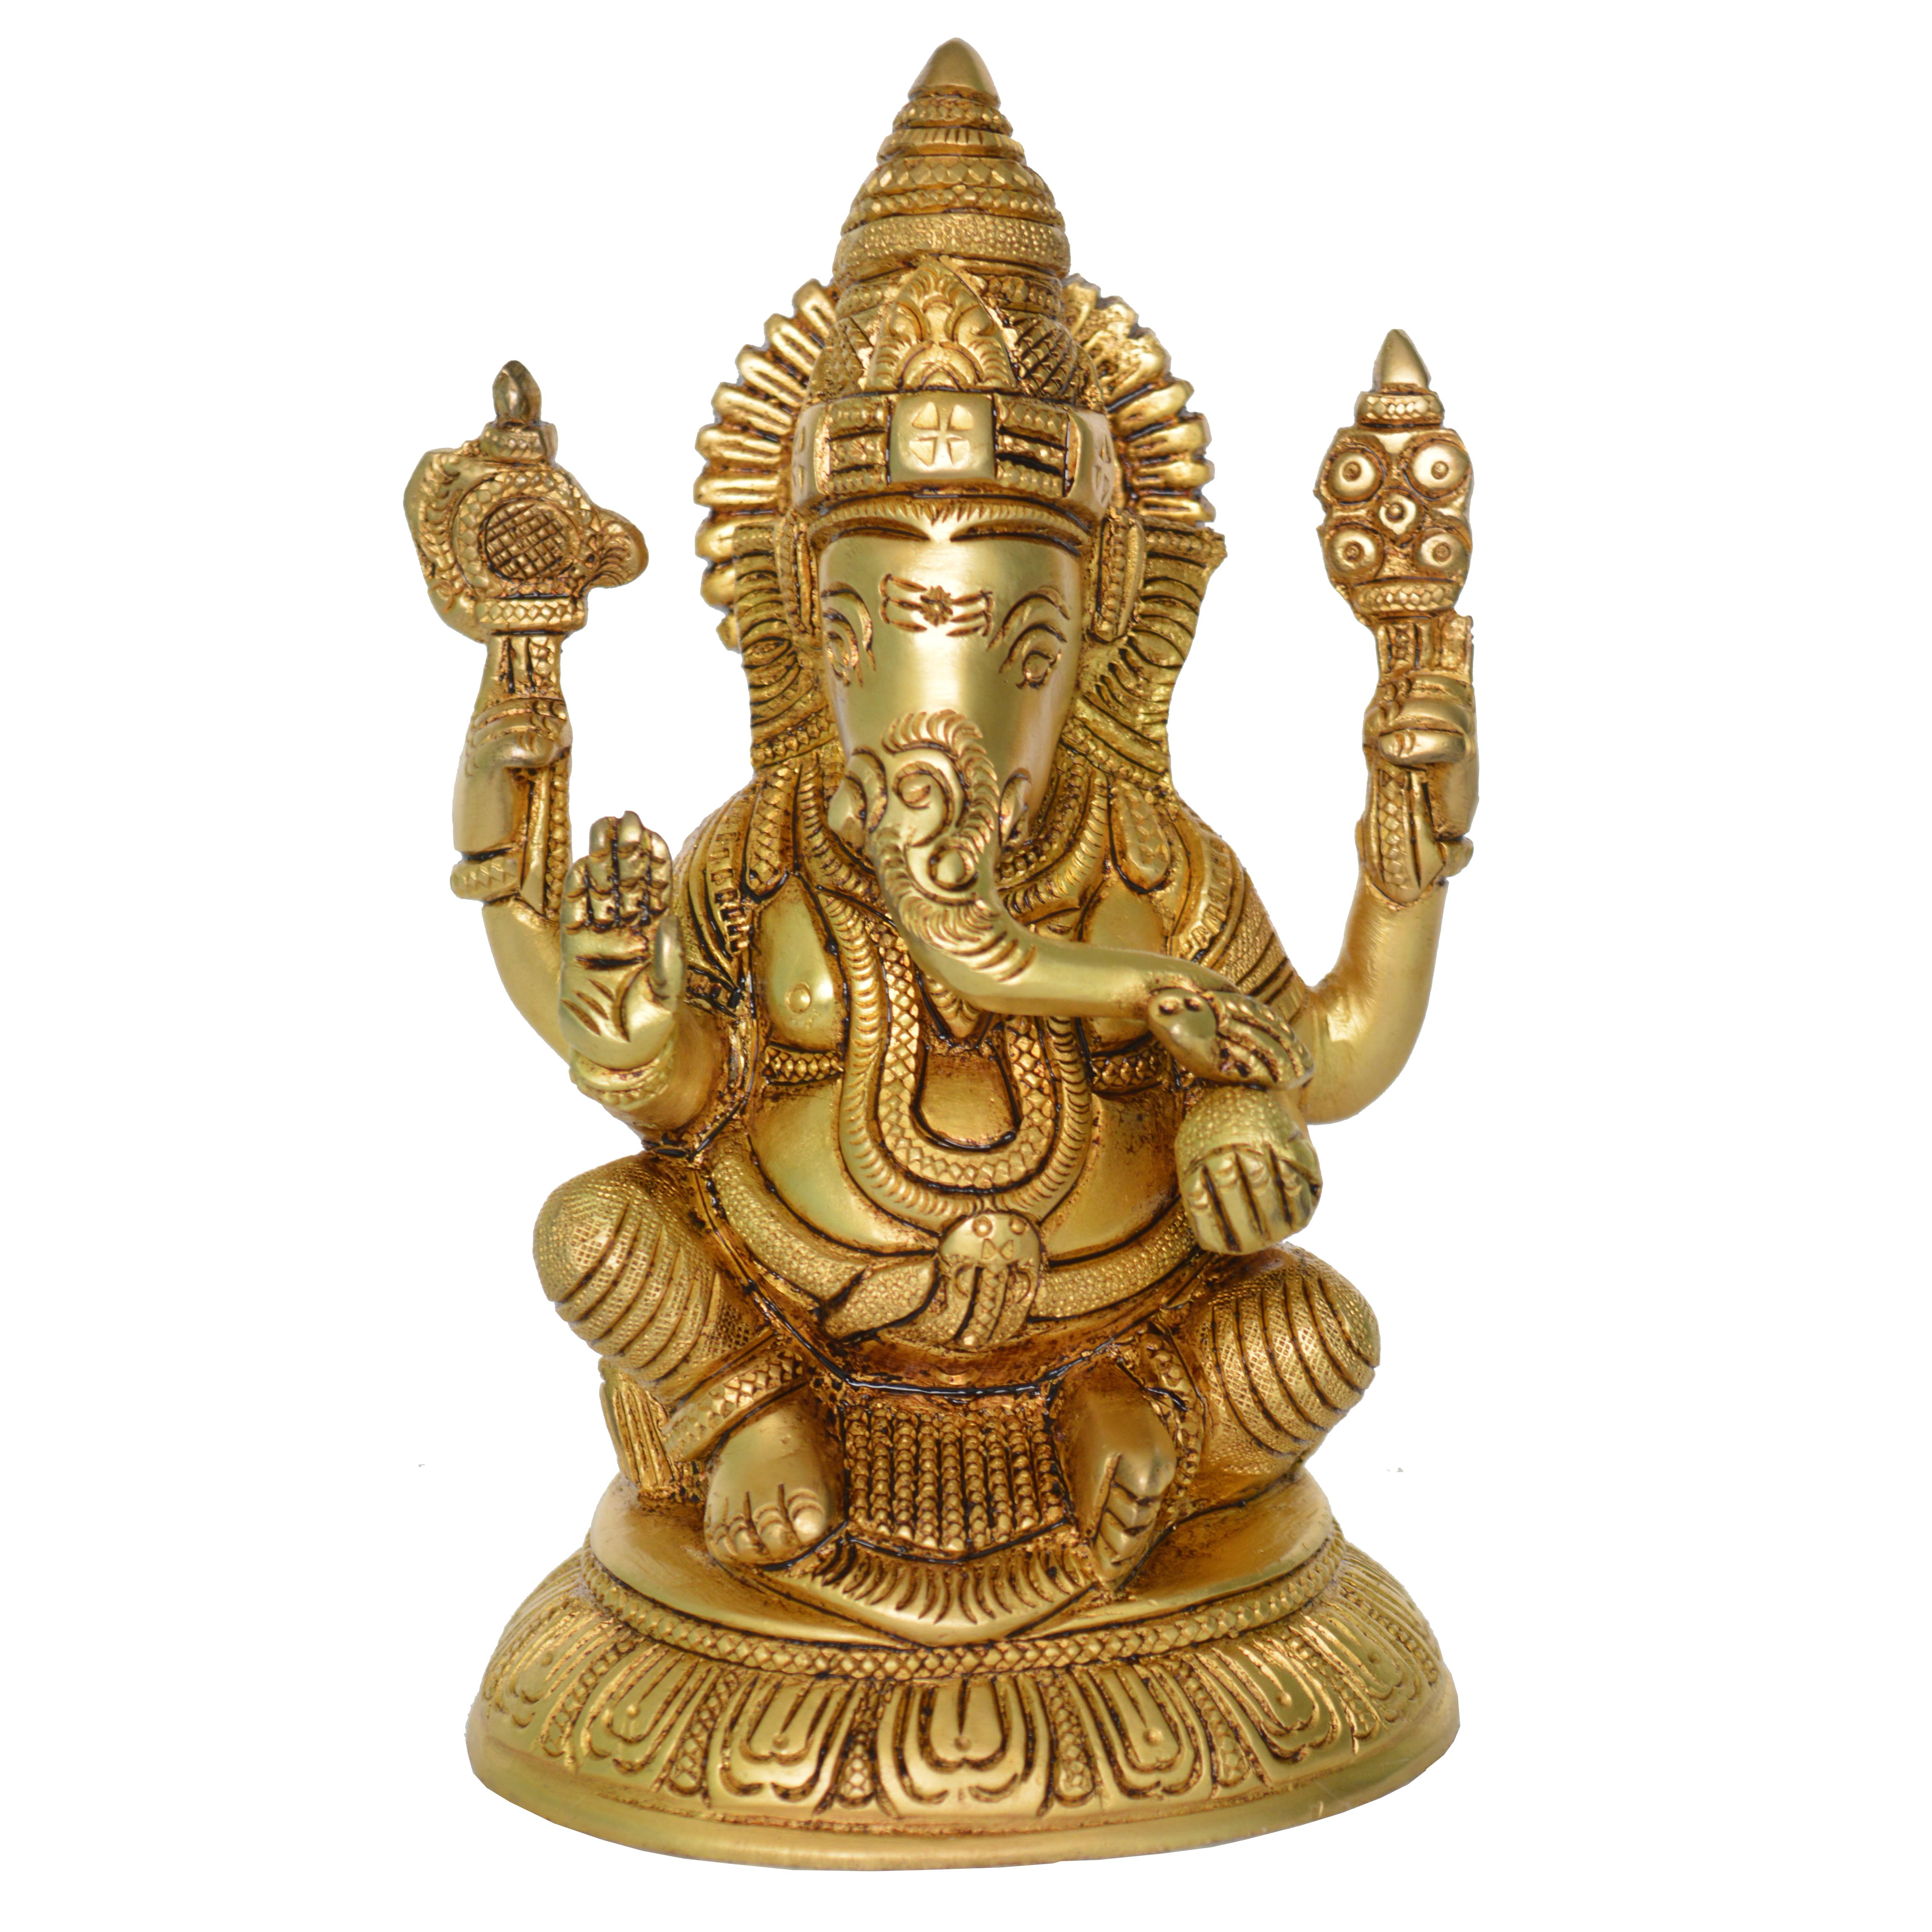 Statue of Lord Ganesha in Antique Finish - Buy Ganesh Online